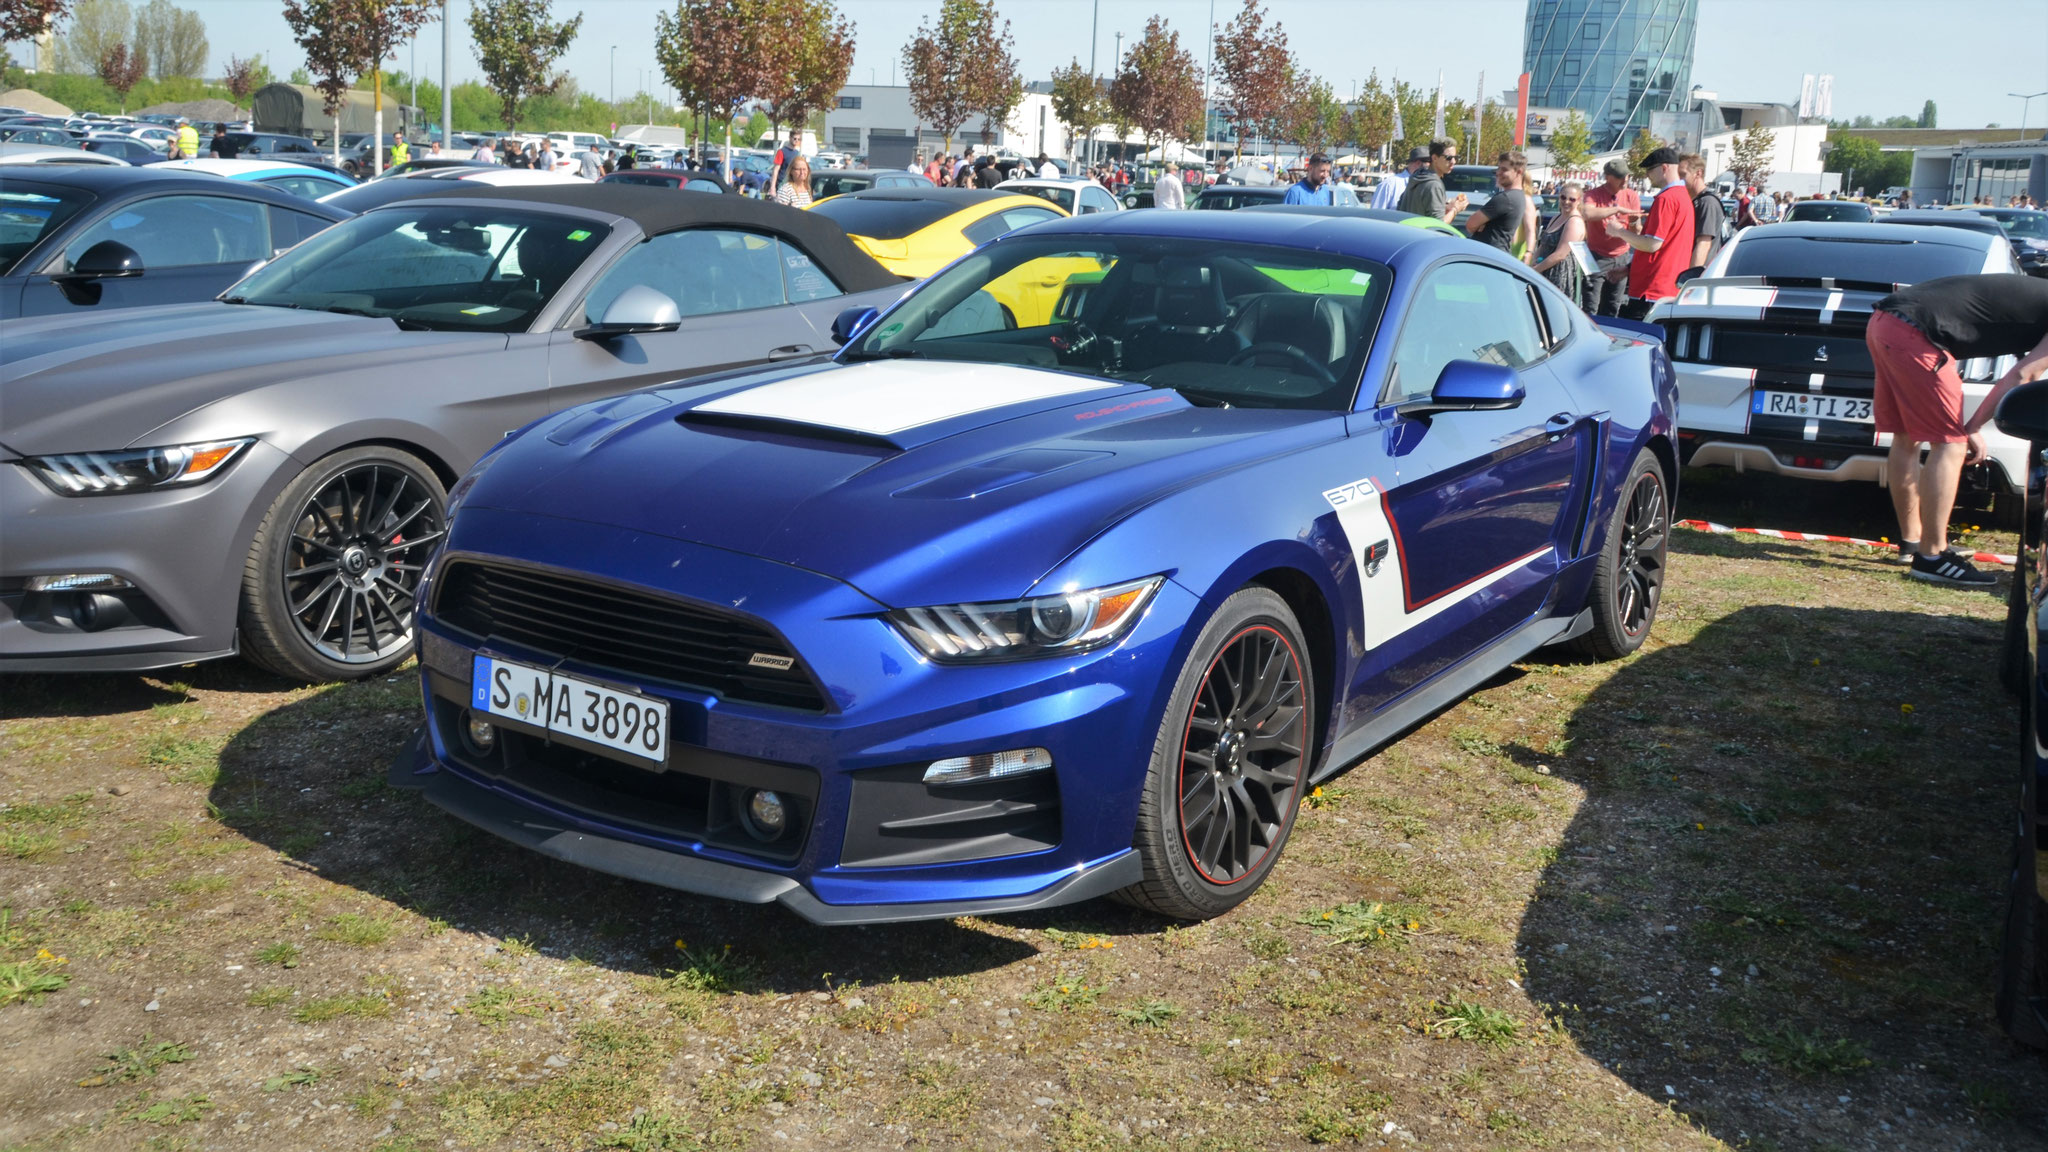 Ford Mustang Rush Warrior 670 - S-MA-3898